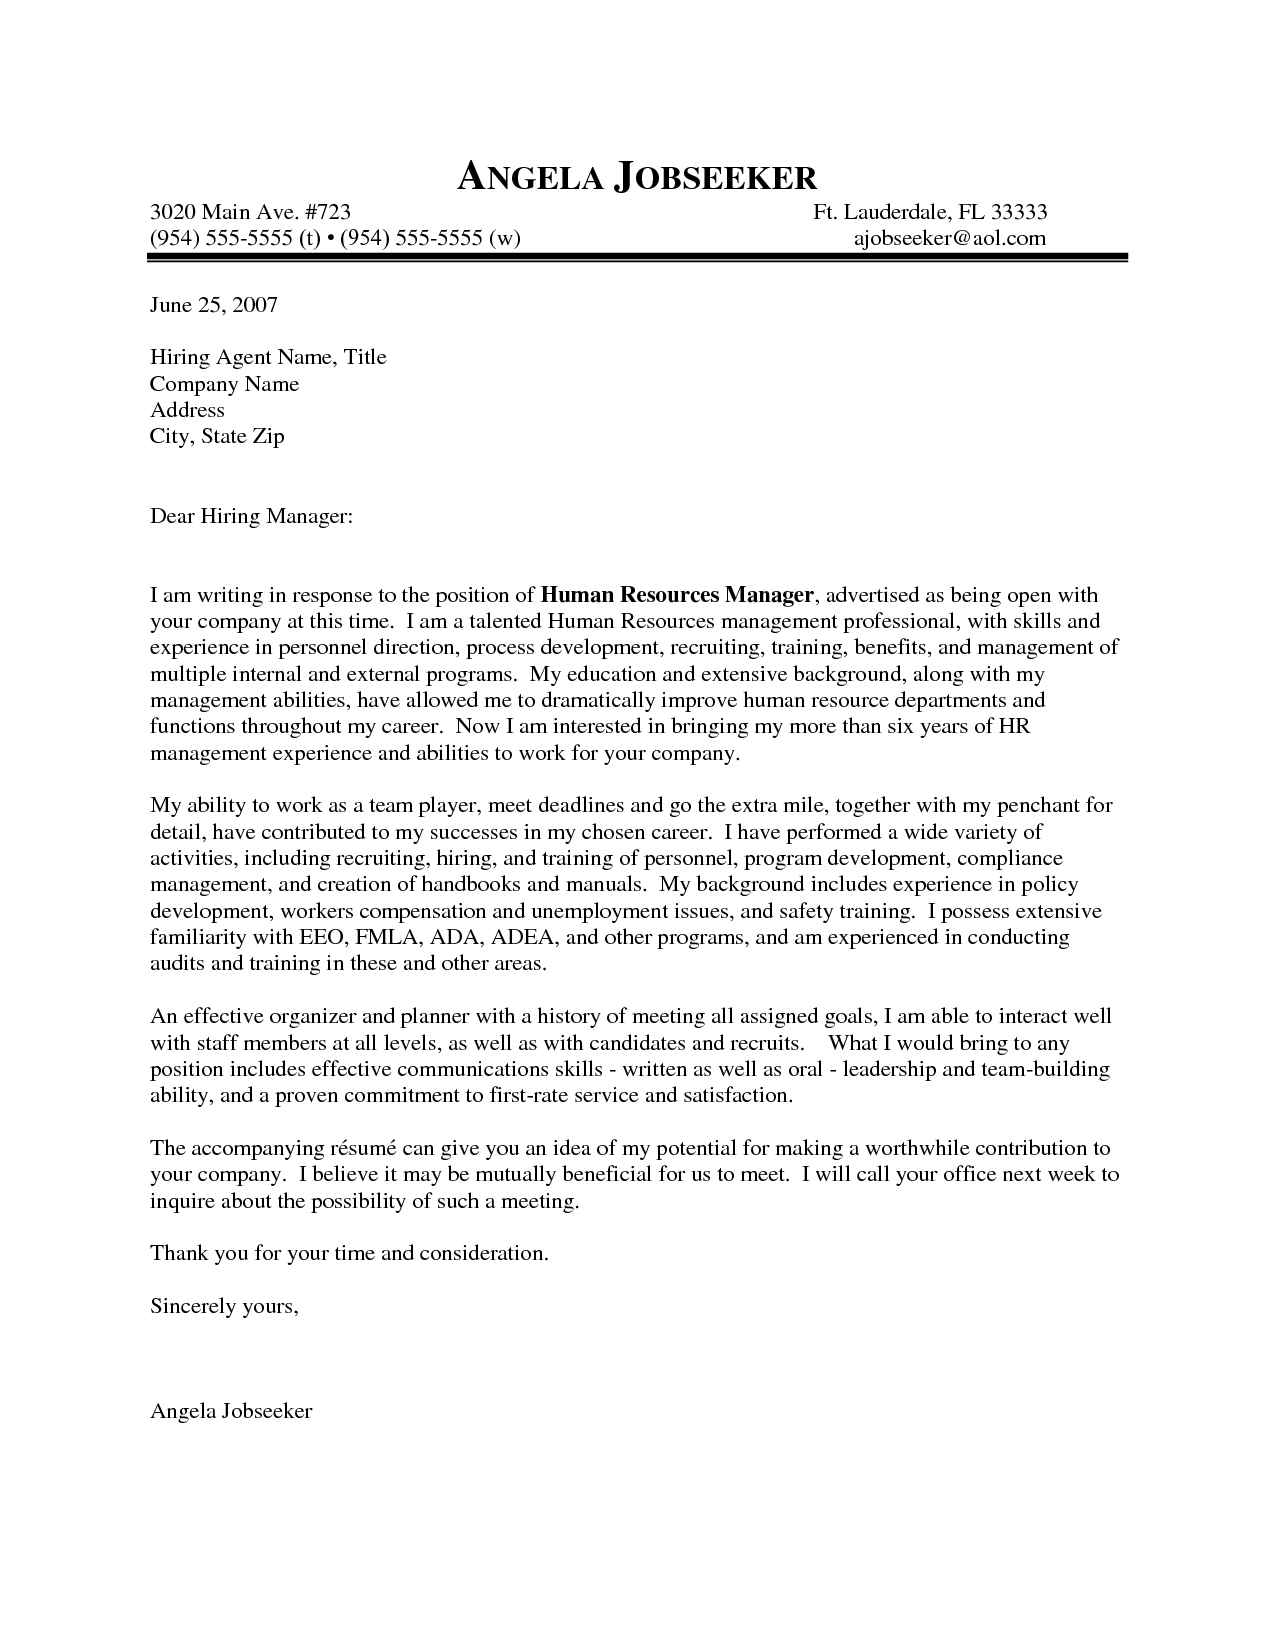 Outstanding Cover Letter Examples | HR Manager Cover Letter